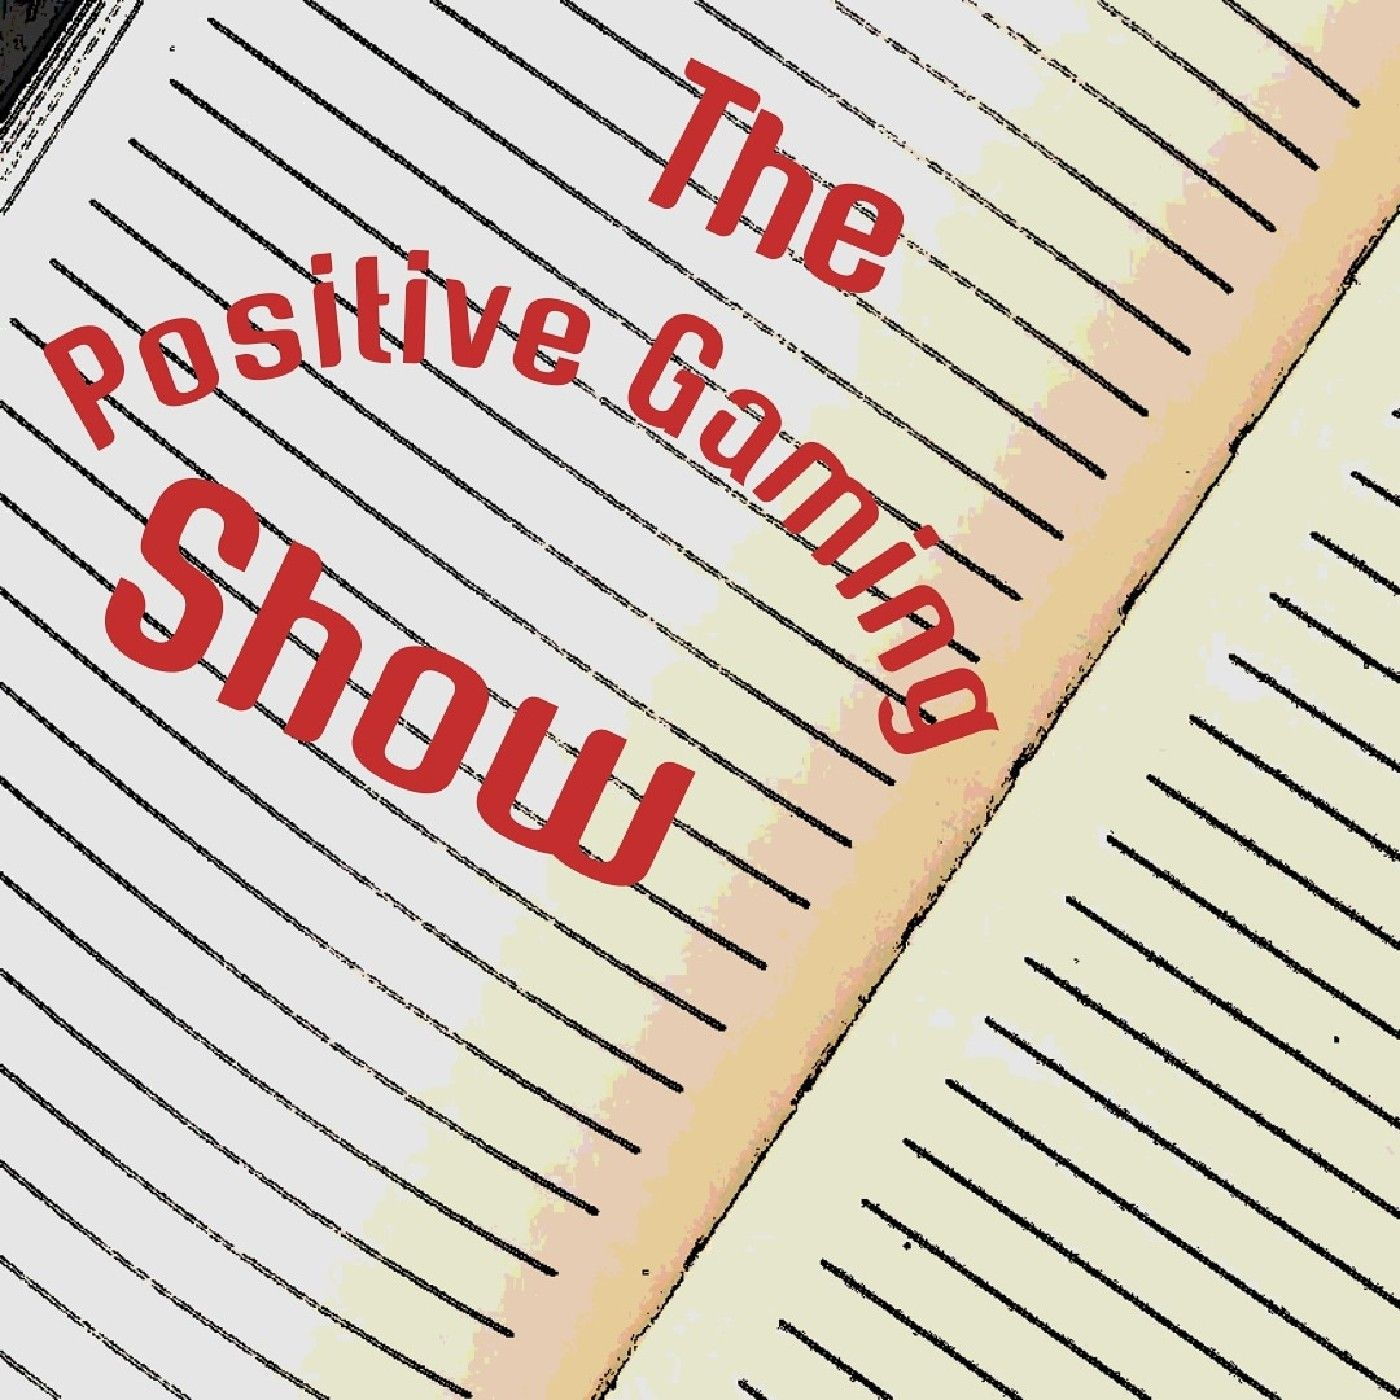 The Positive Gaming Show